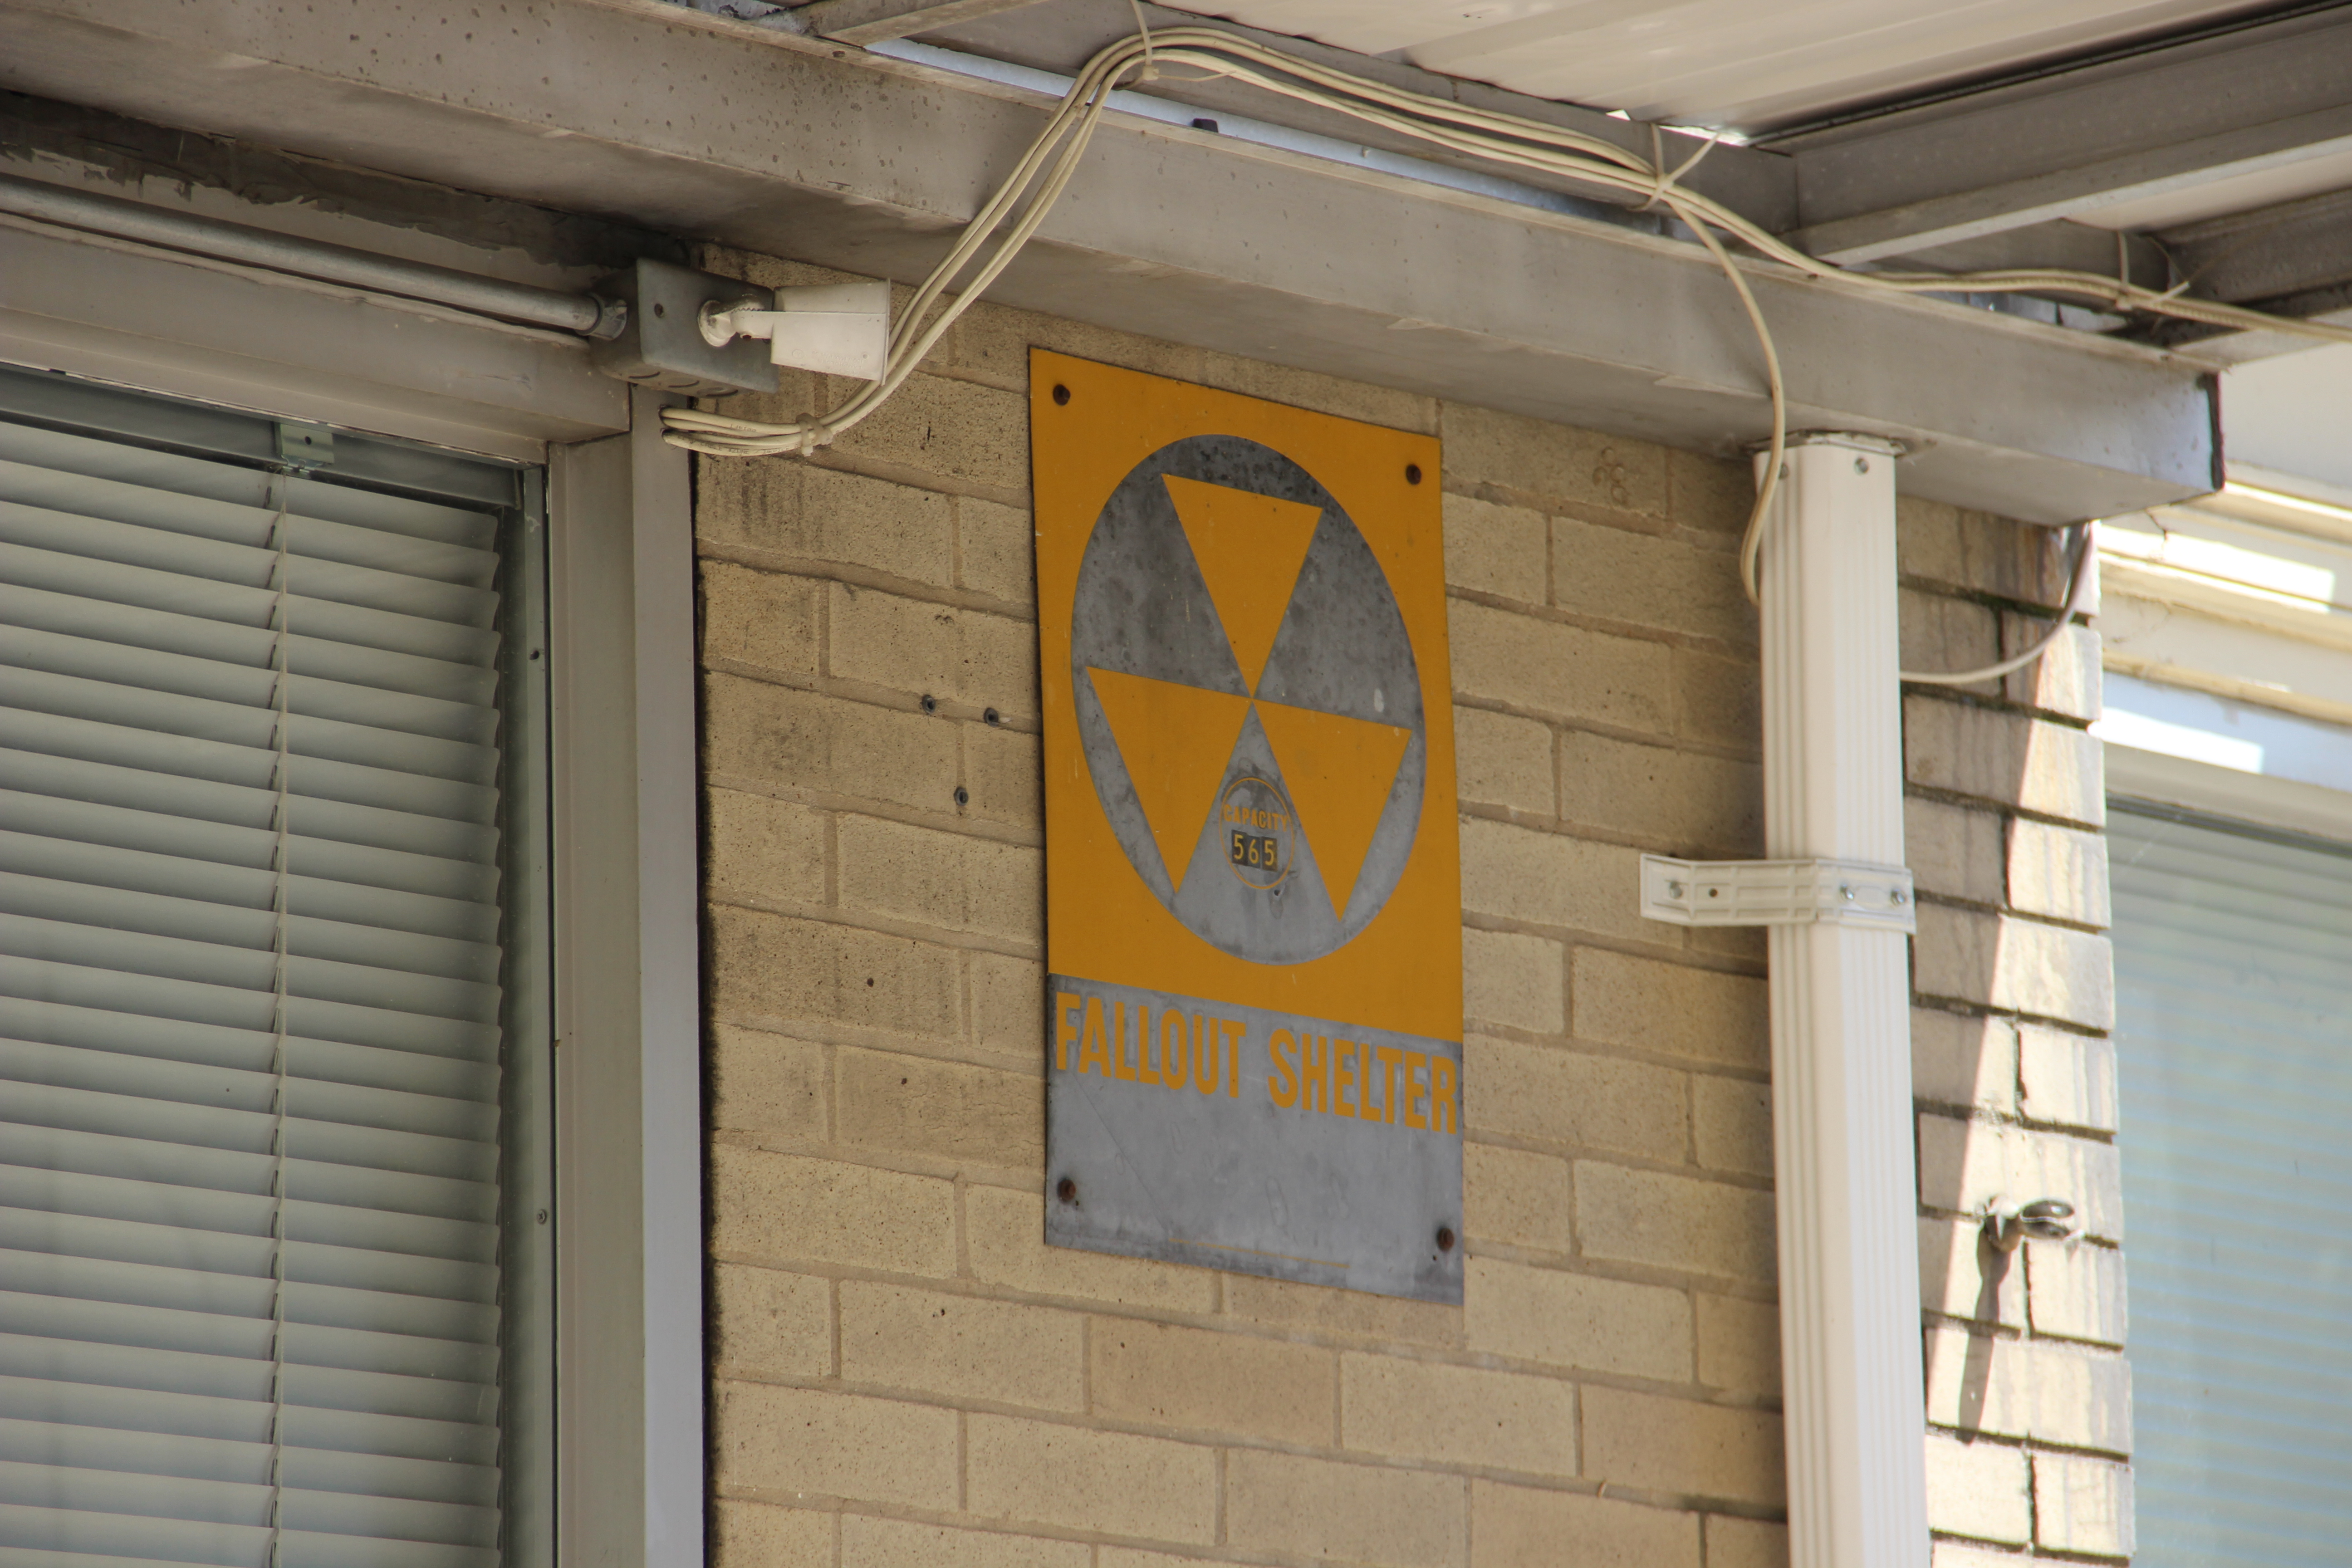 Cold War era fallout shelter